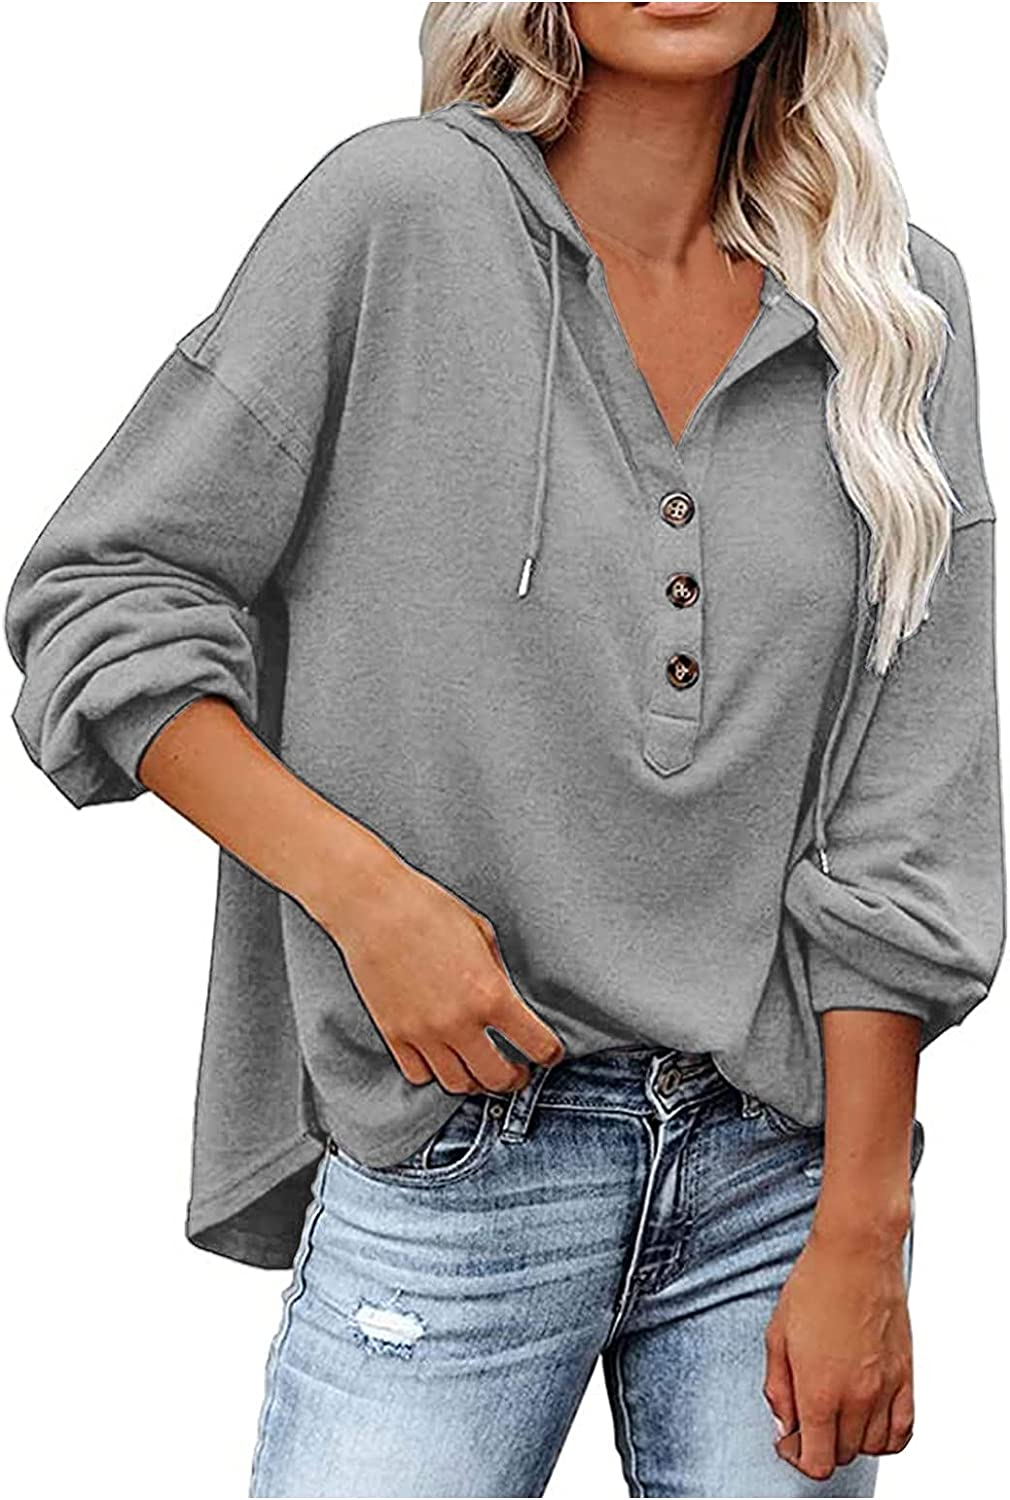 Womens Long Ranking TOP8 Sleeve Tee Shirt with Pullov Now on sale V Button Sexy Neck Hood